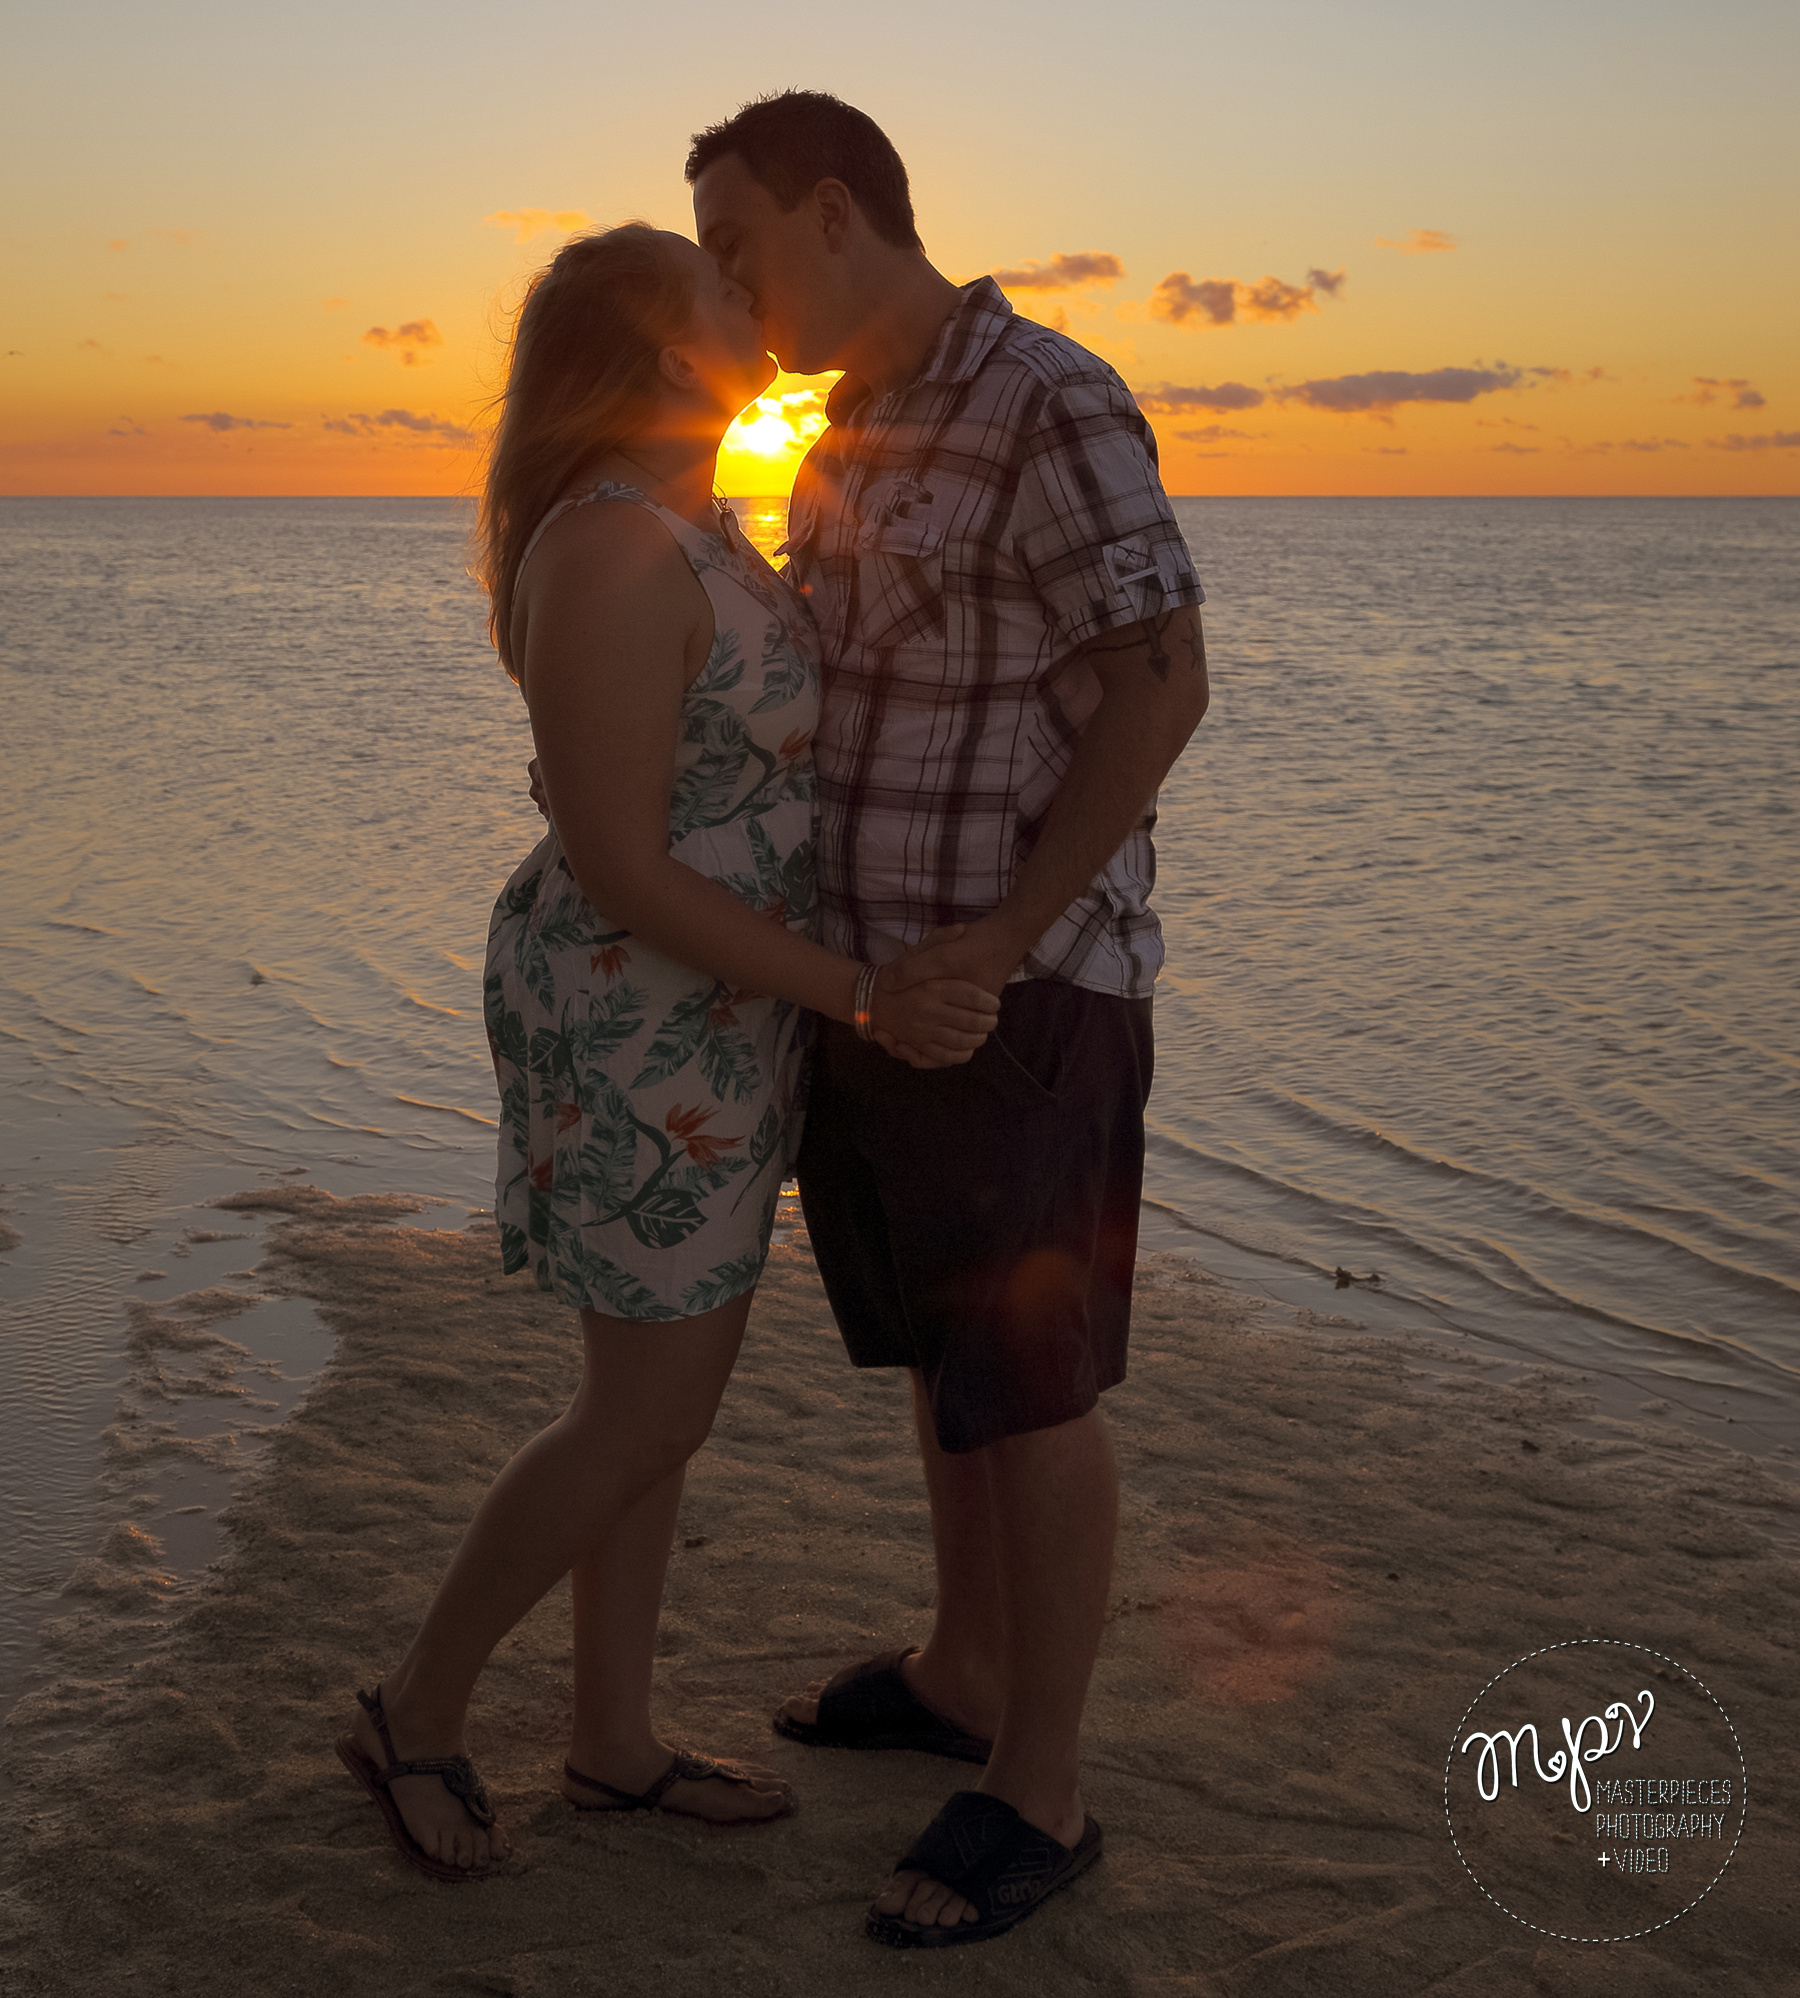 Win a free engagement photo shoot